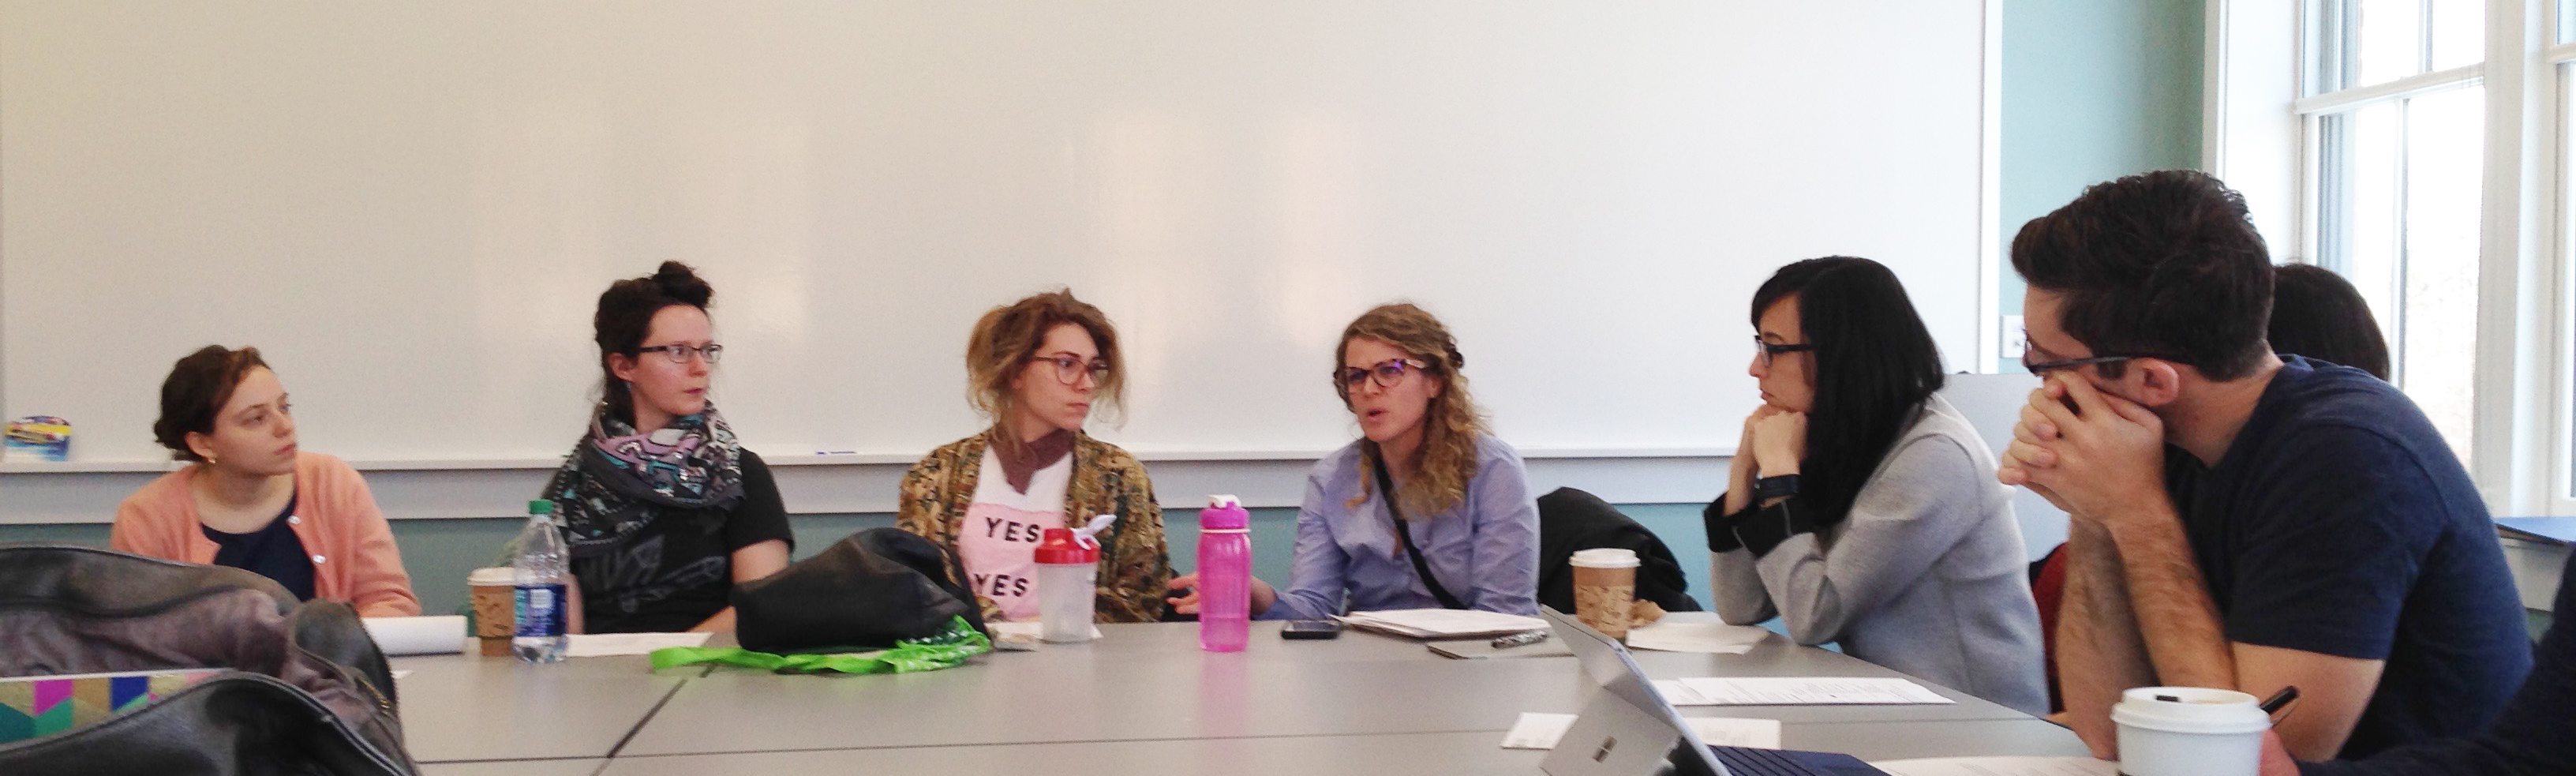 Graduate Students in the Composition and Rhetoric program discuss work in progress at a Comp Share